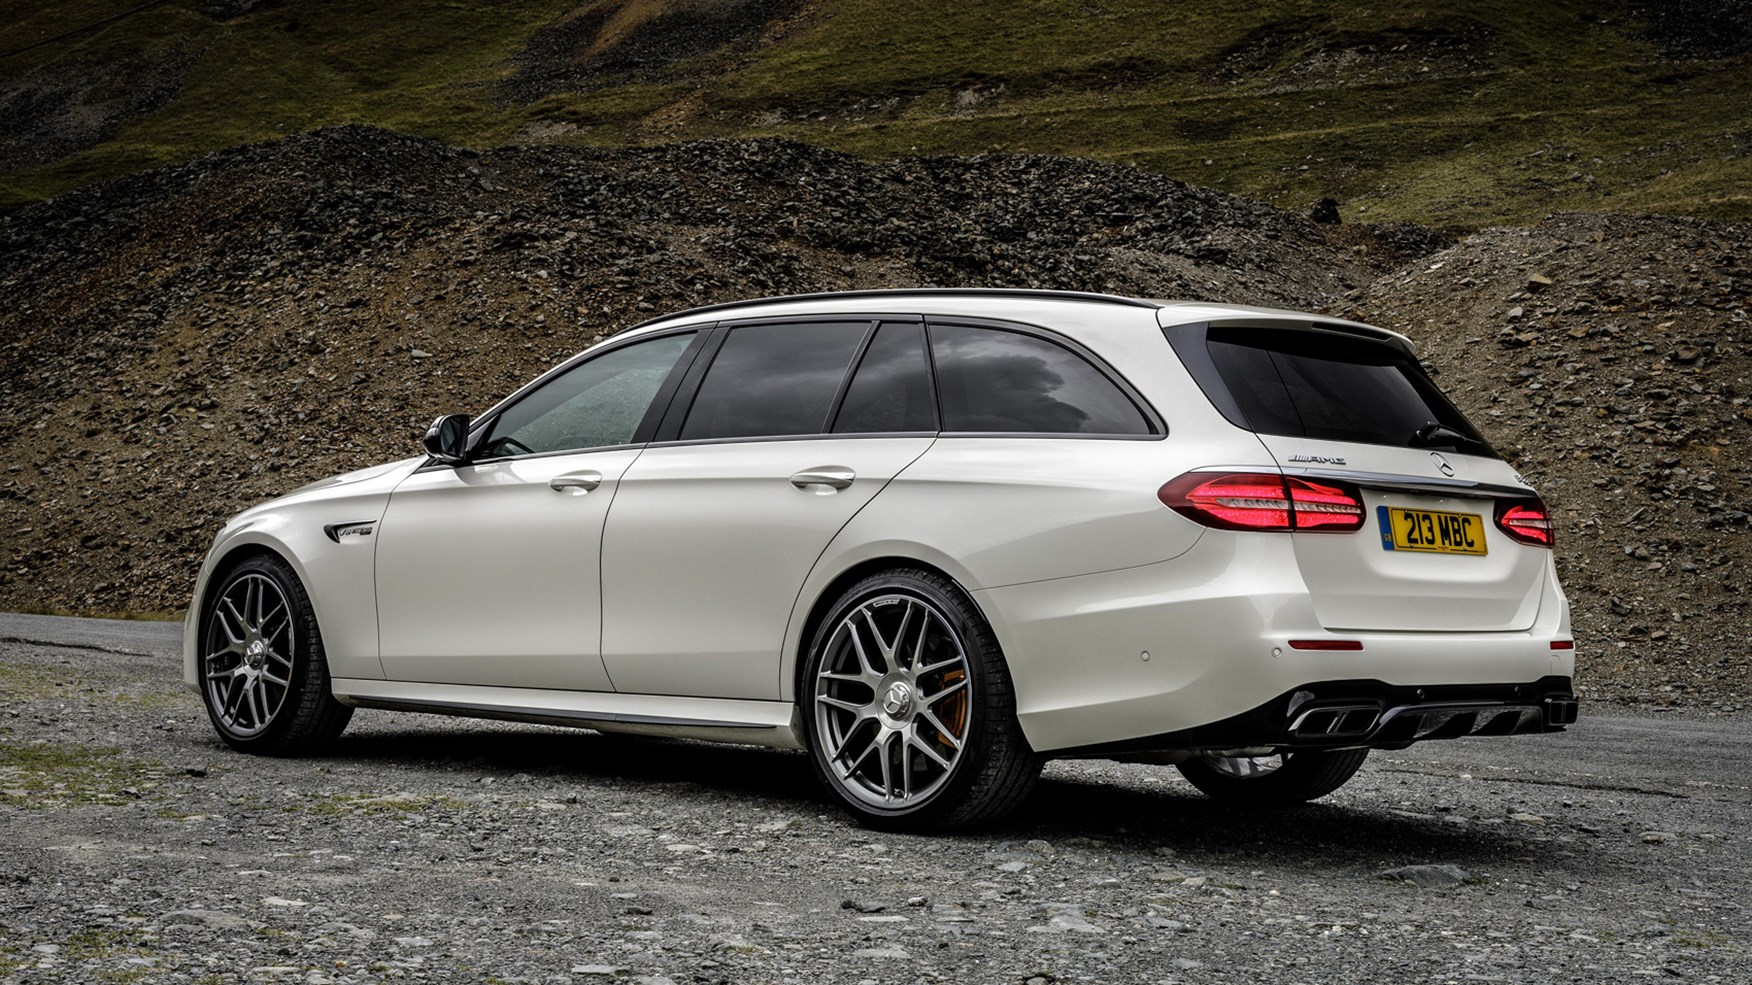 Mercedes Amg E63 S 4matic Estate 2017 Review By Car